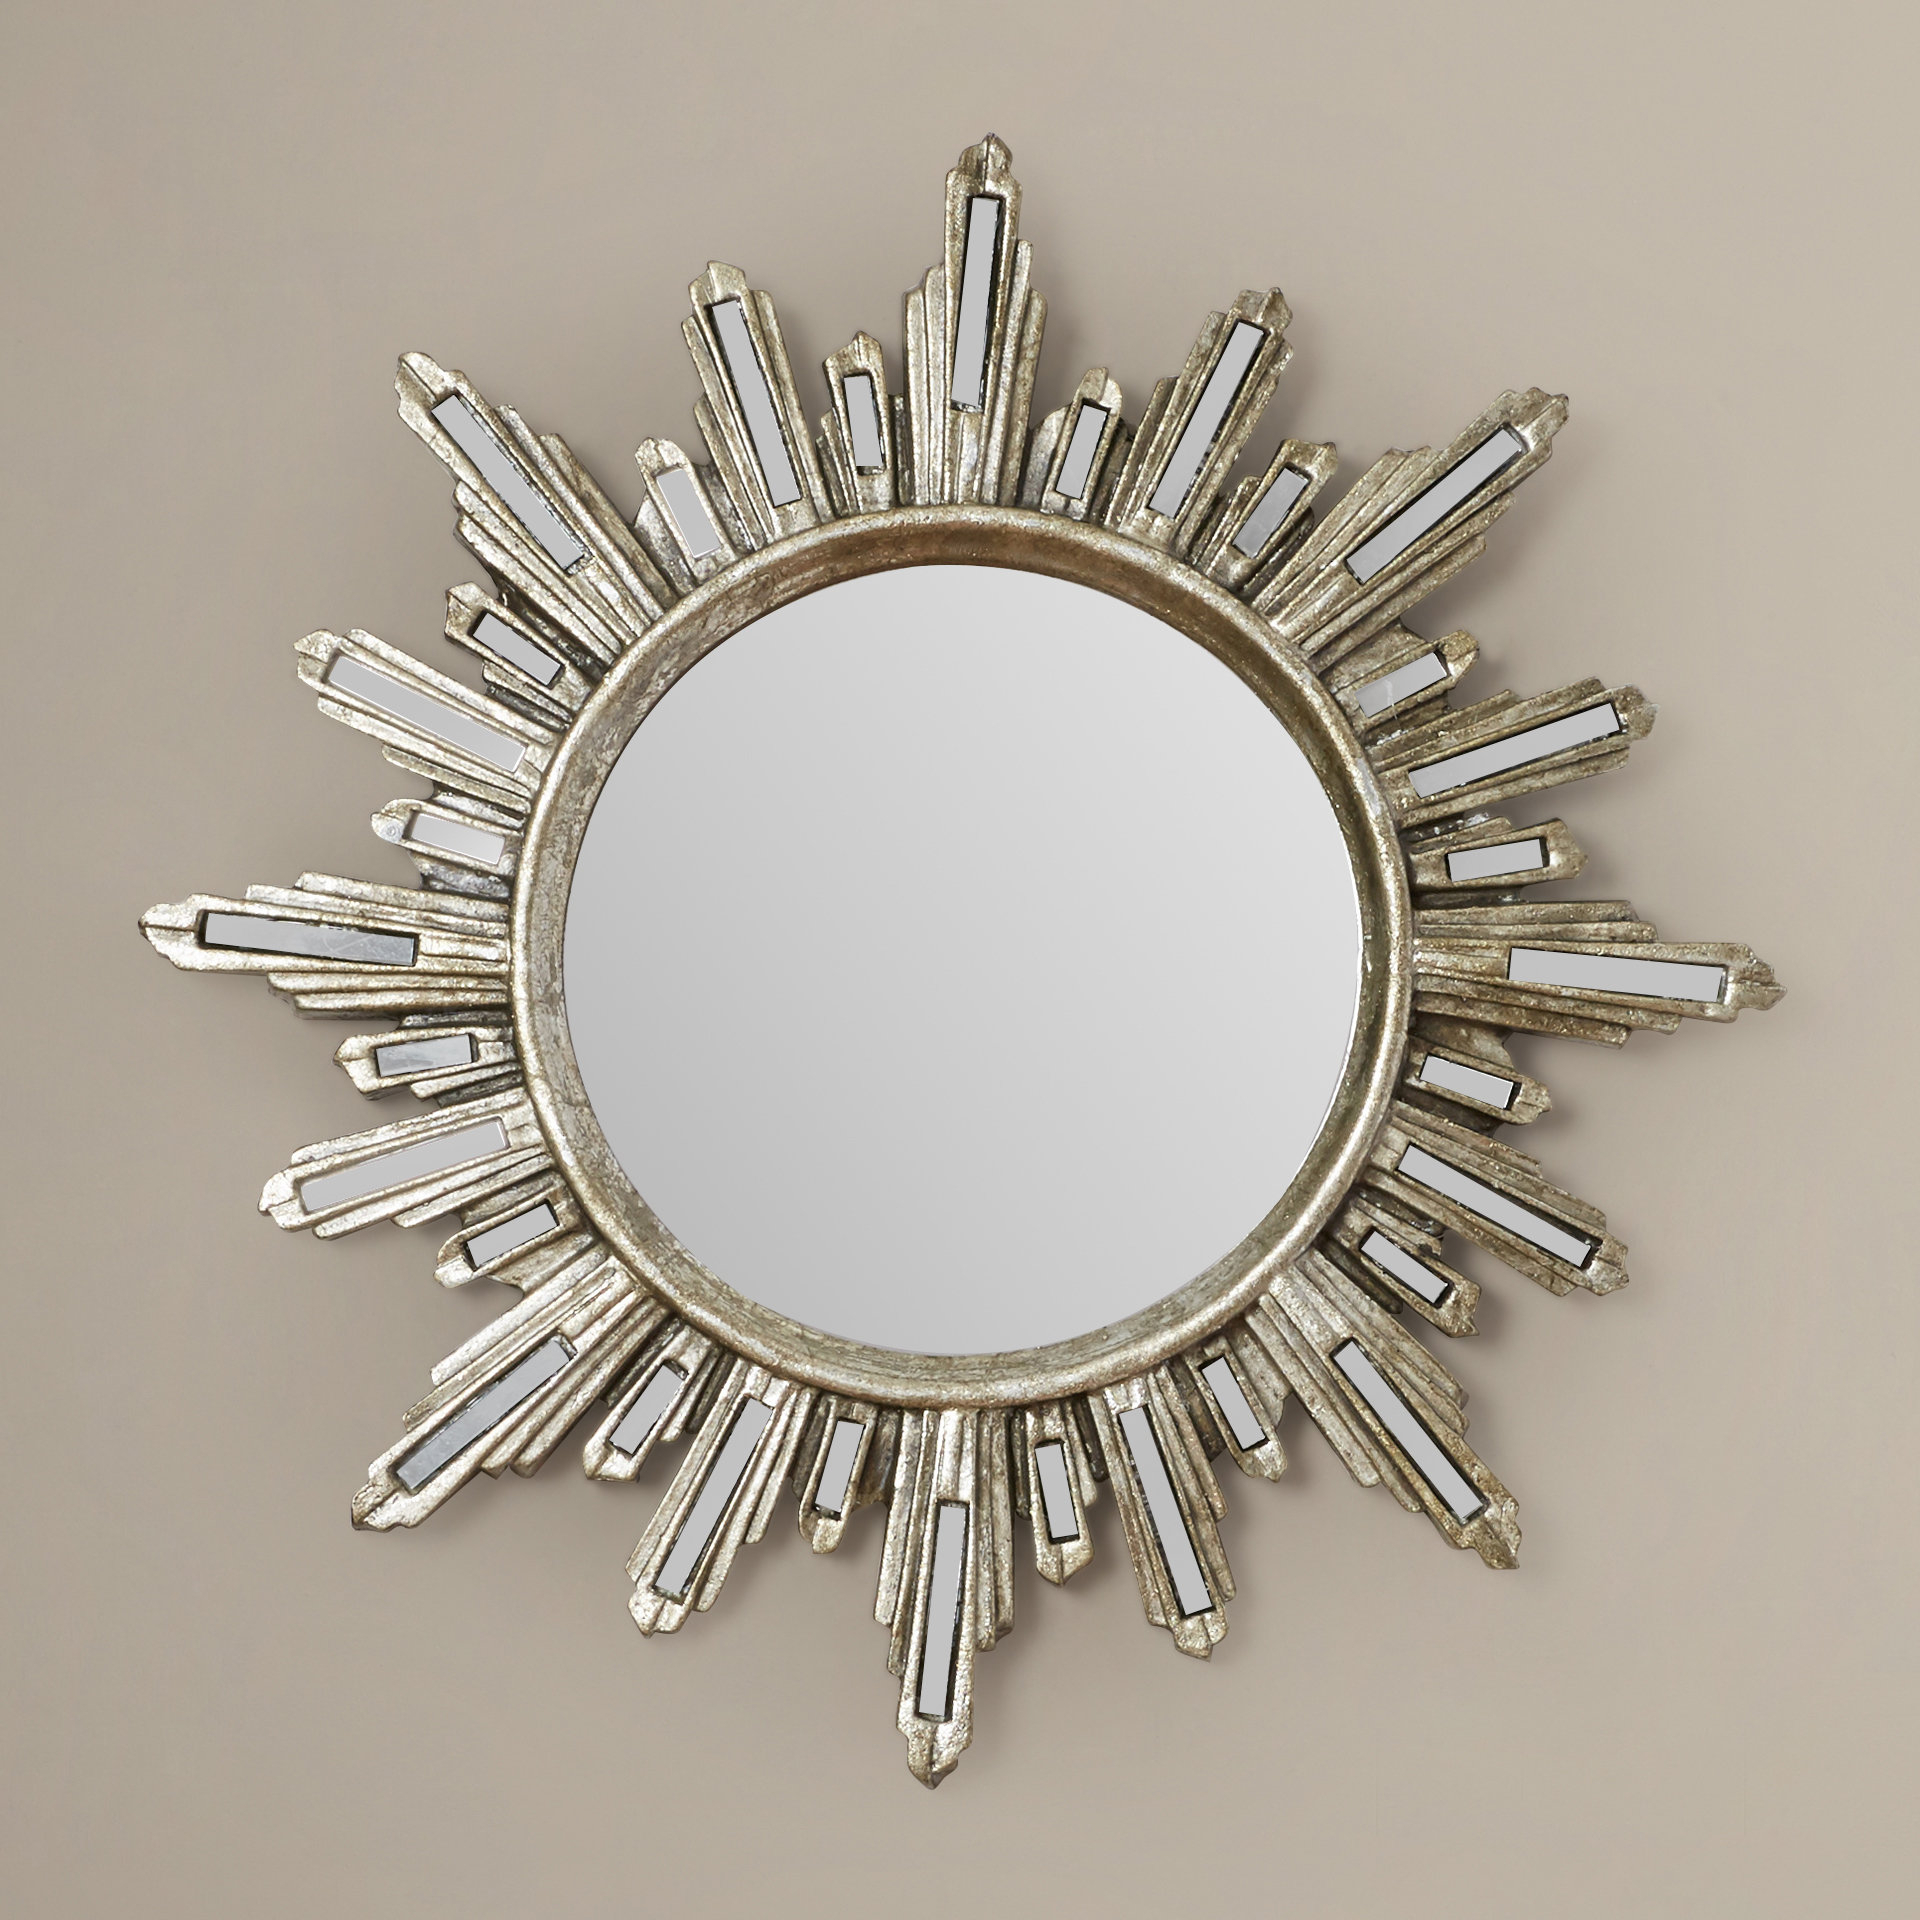 Modern Sunburst Wall Mounted Wall & Accent Mirrors | Allmodern For Newtown Accent Mirrors (View 10 of 30)